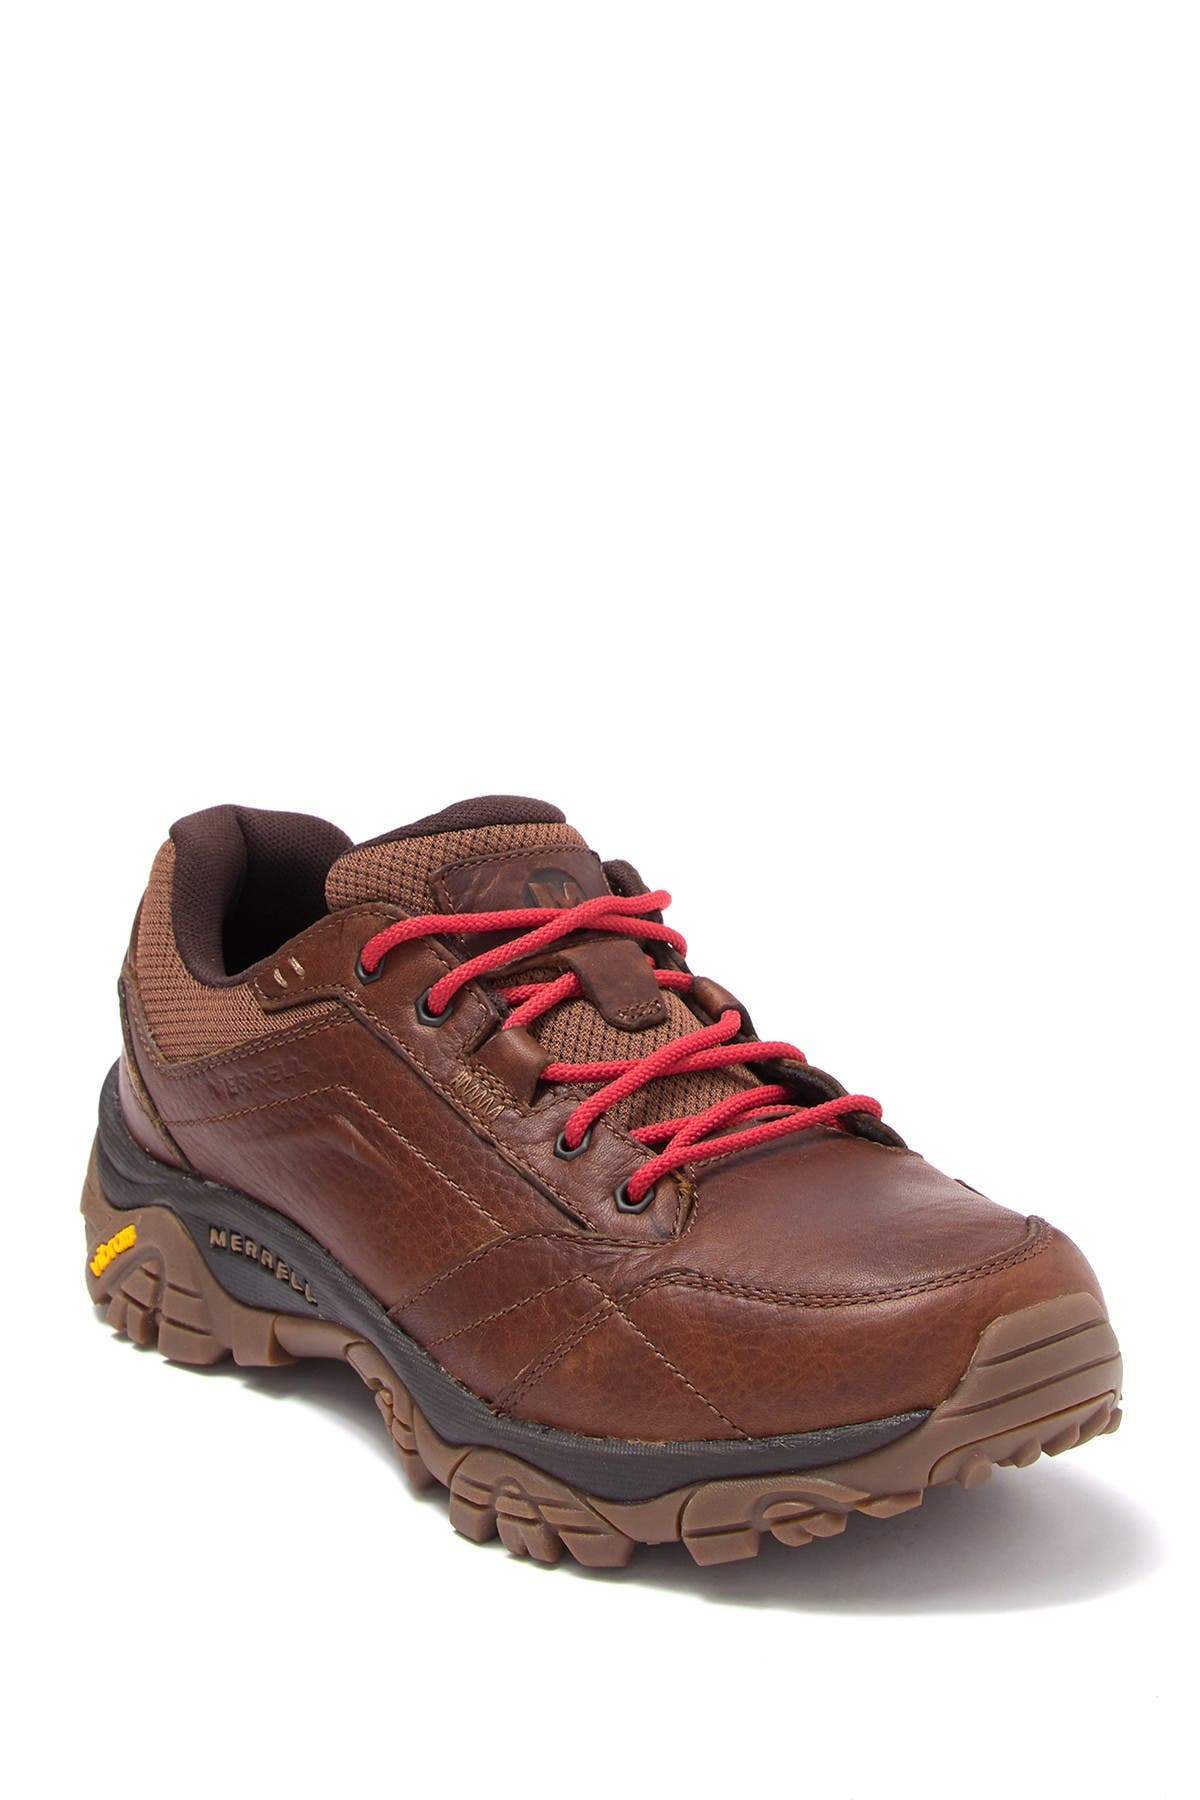 Image of Merrell Moab Adventure Luna Lace-Up Sneaker